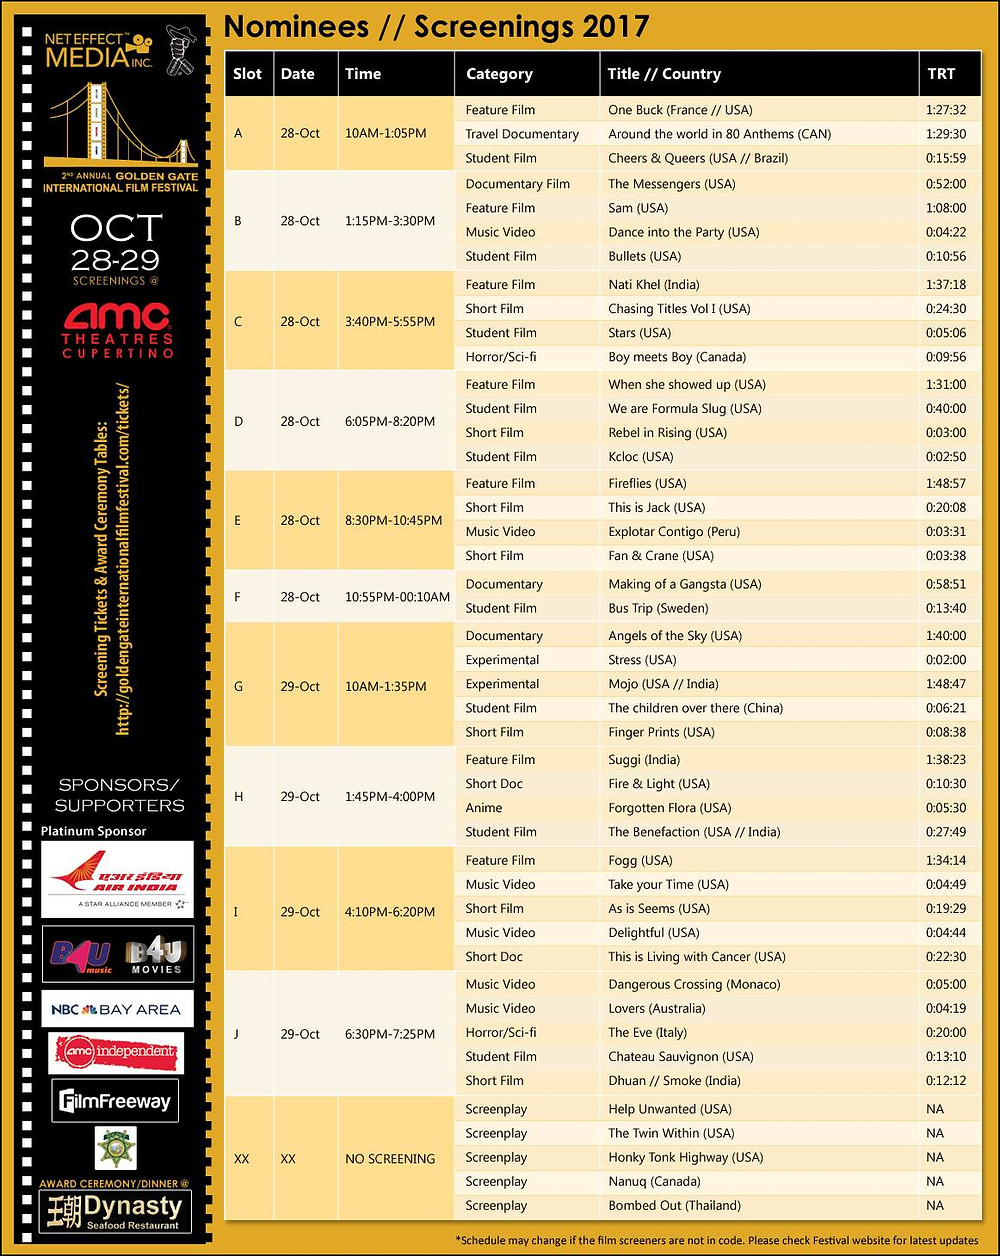 The film screening schedule for the Golden Gate International Film Festival.